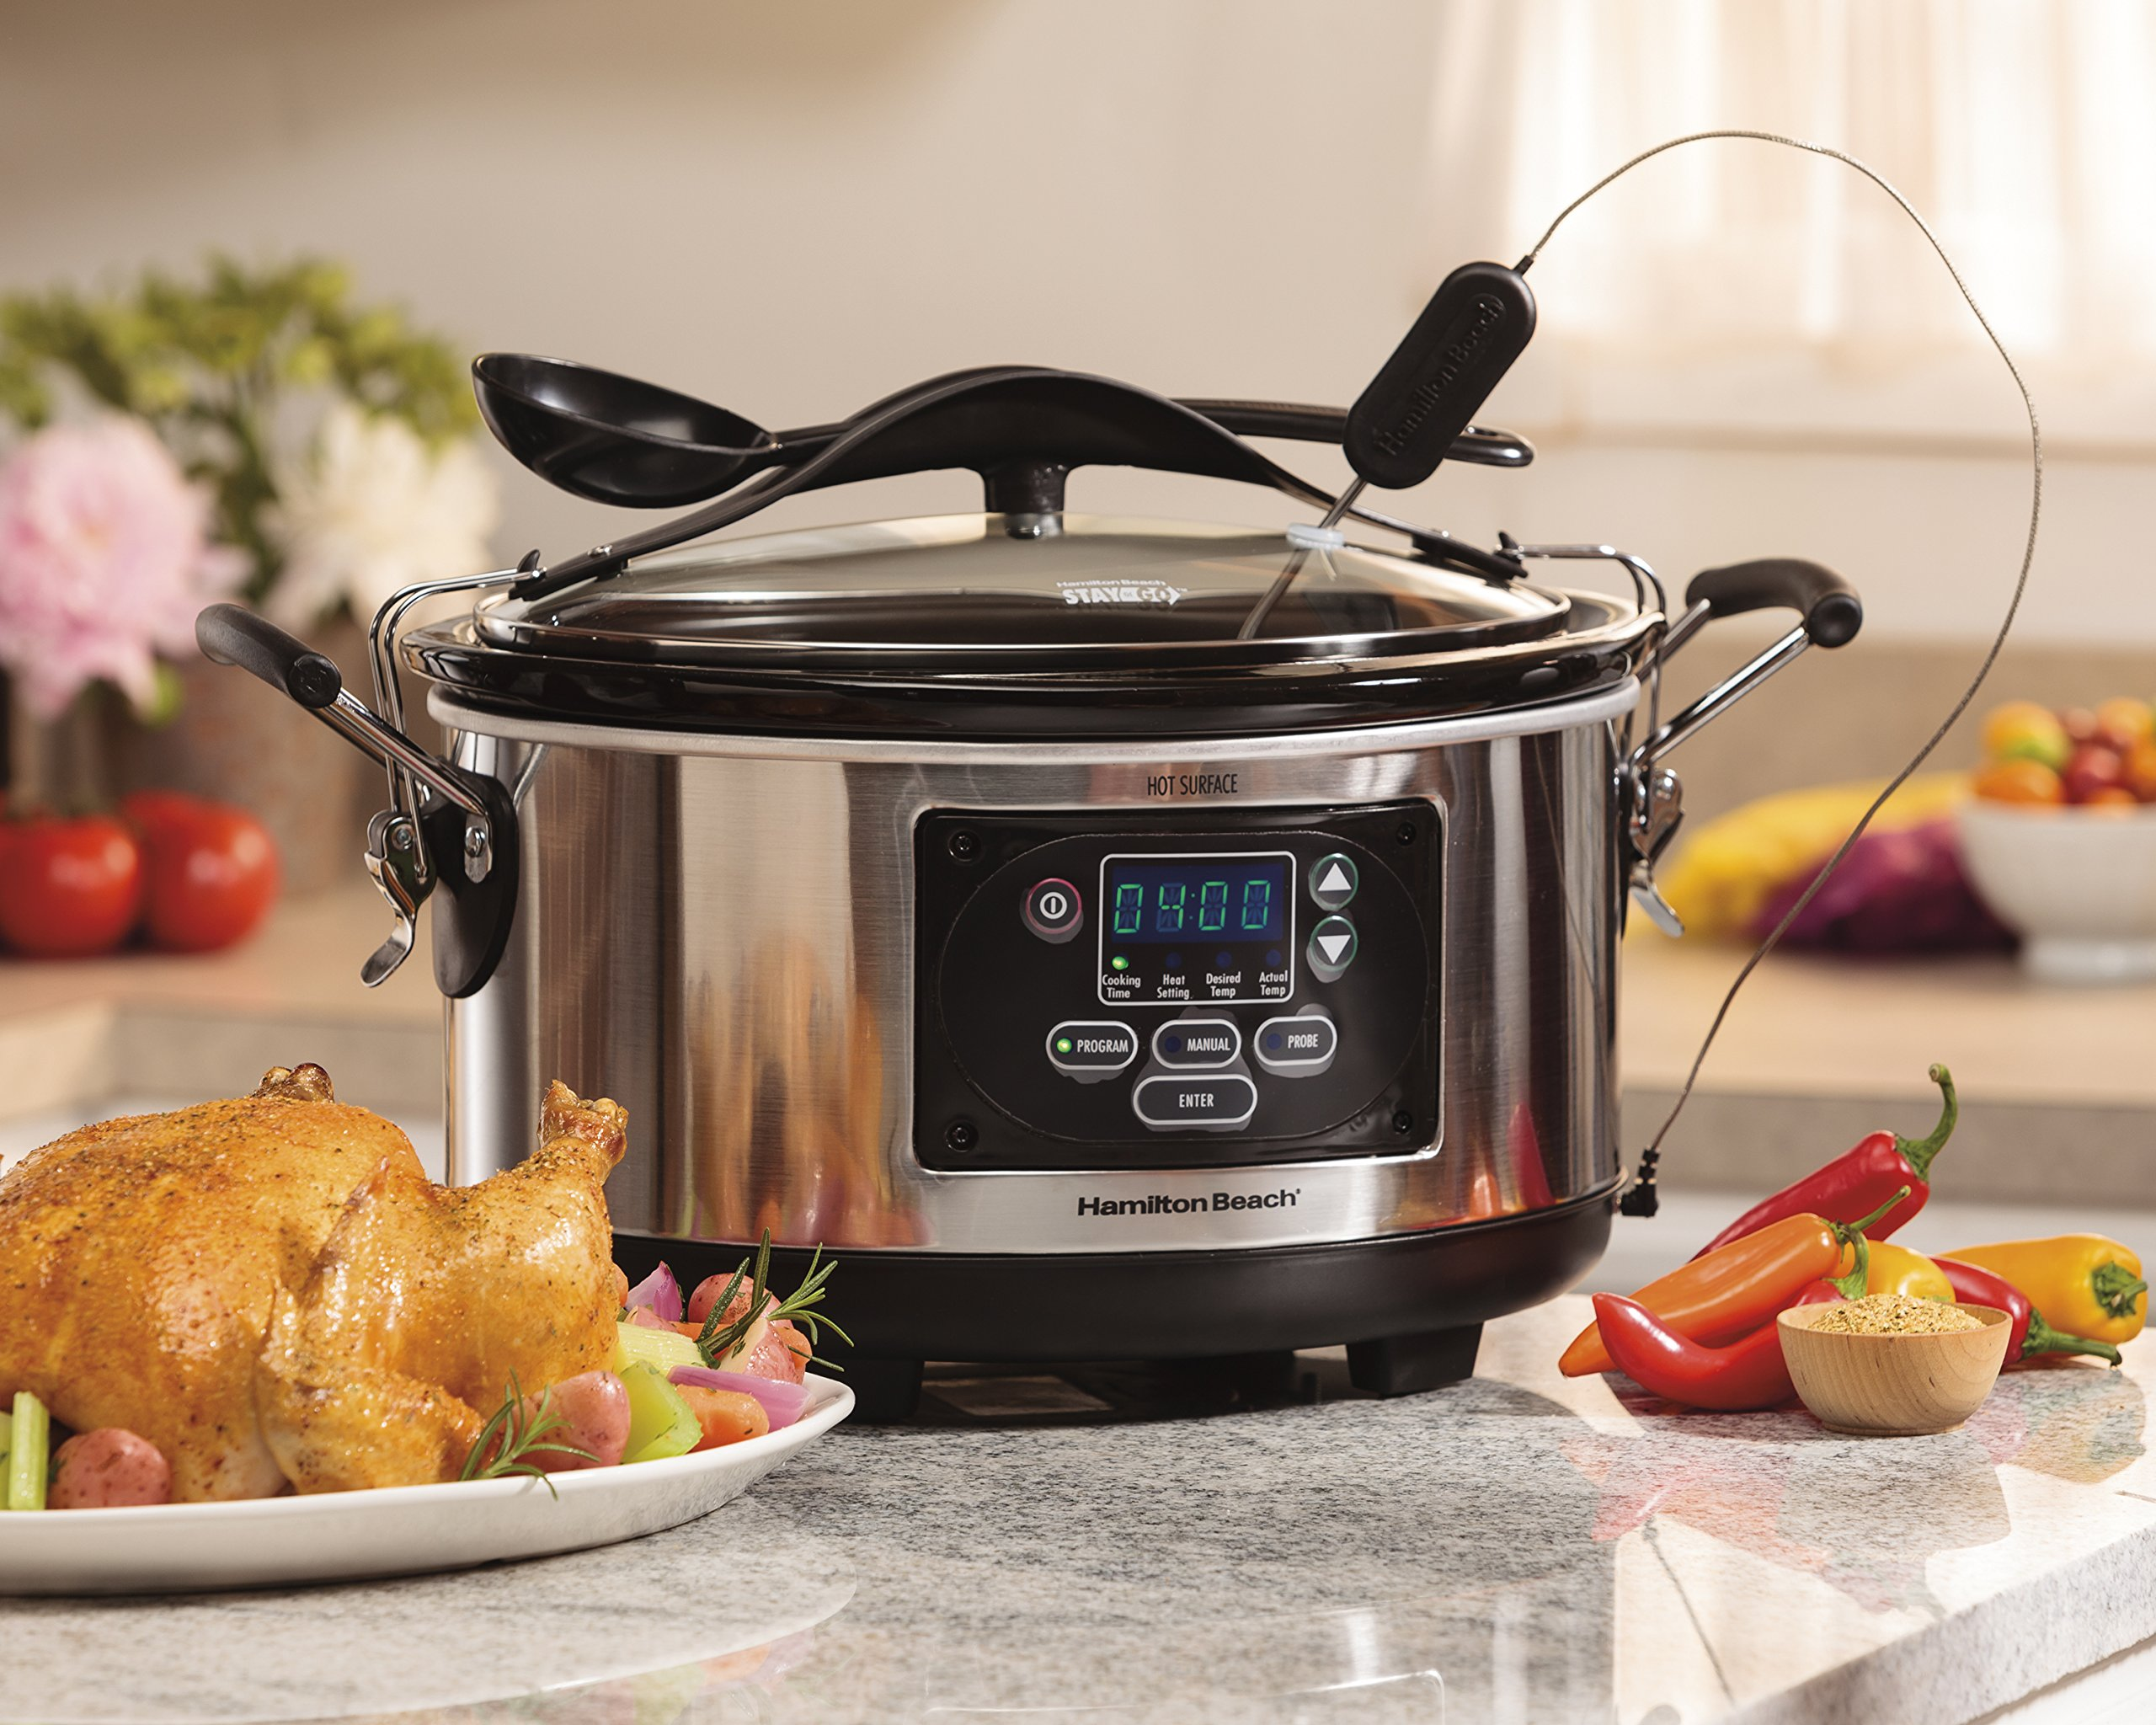 Hamilton Beach (33967A) Slow Cooker With Temperature Probe, 6 Quart, Programmable, Stainless Steel by Hamilton Beach (Image #4)